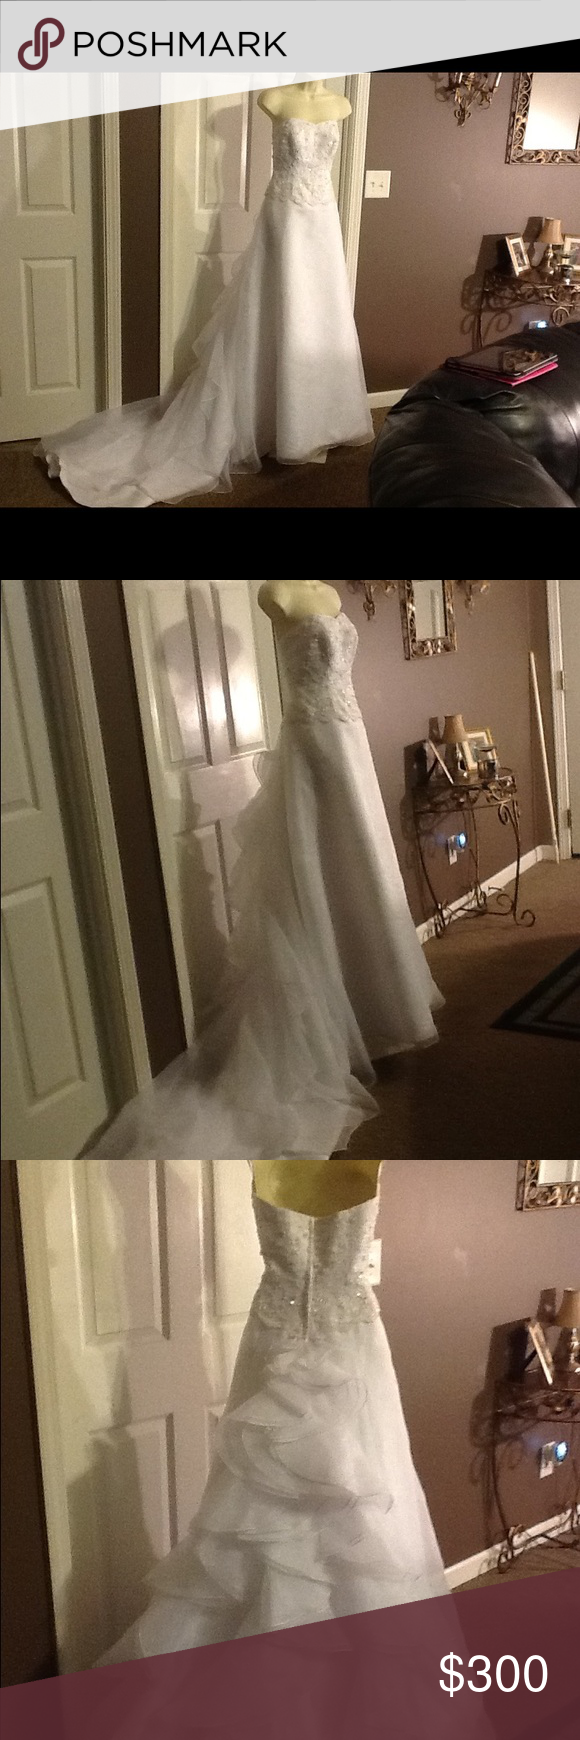 Additional photos of the wedding dress size wedding dress